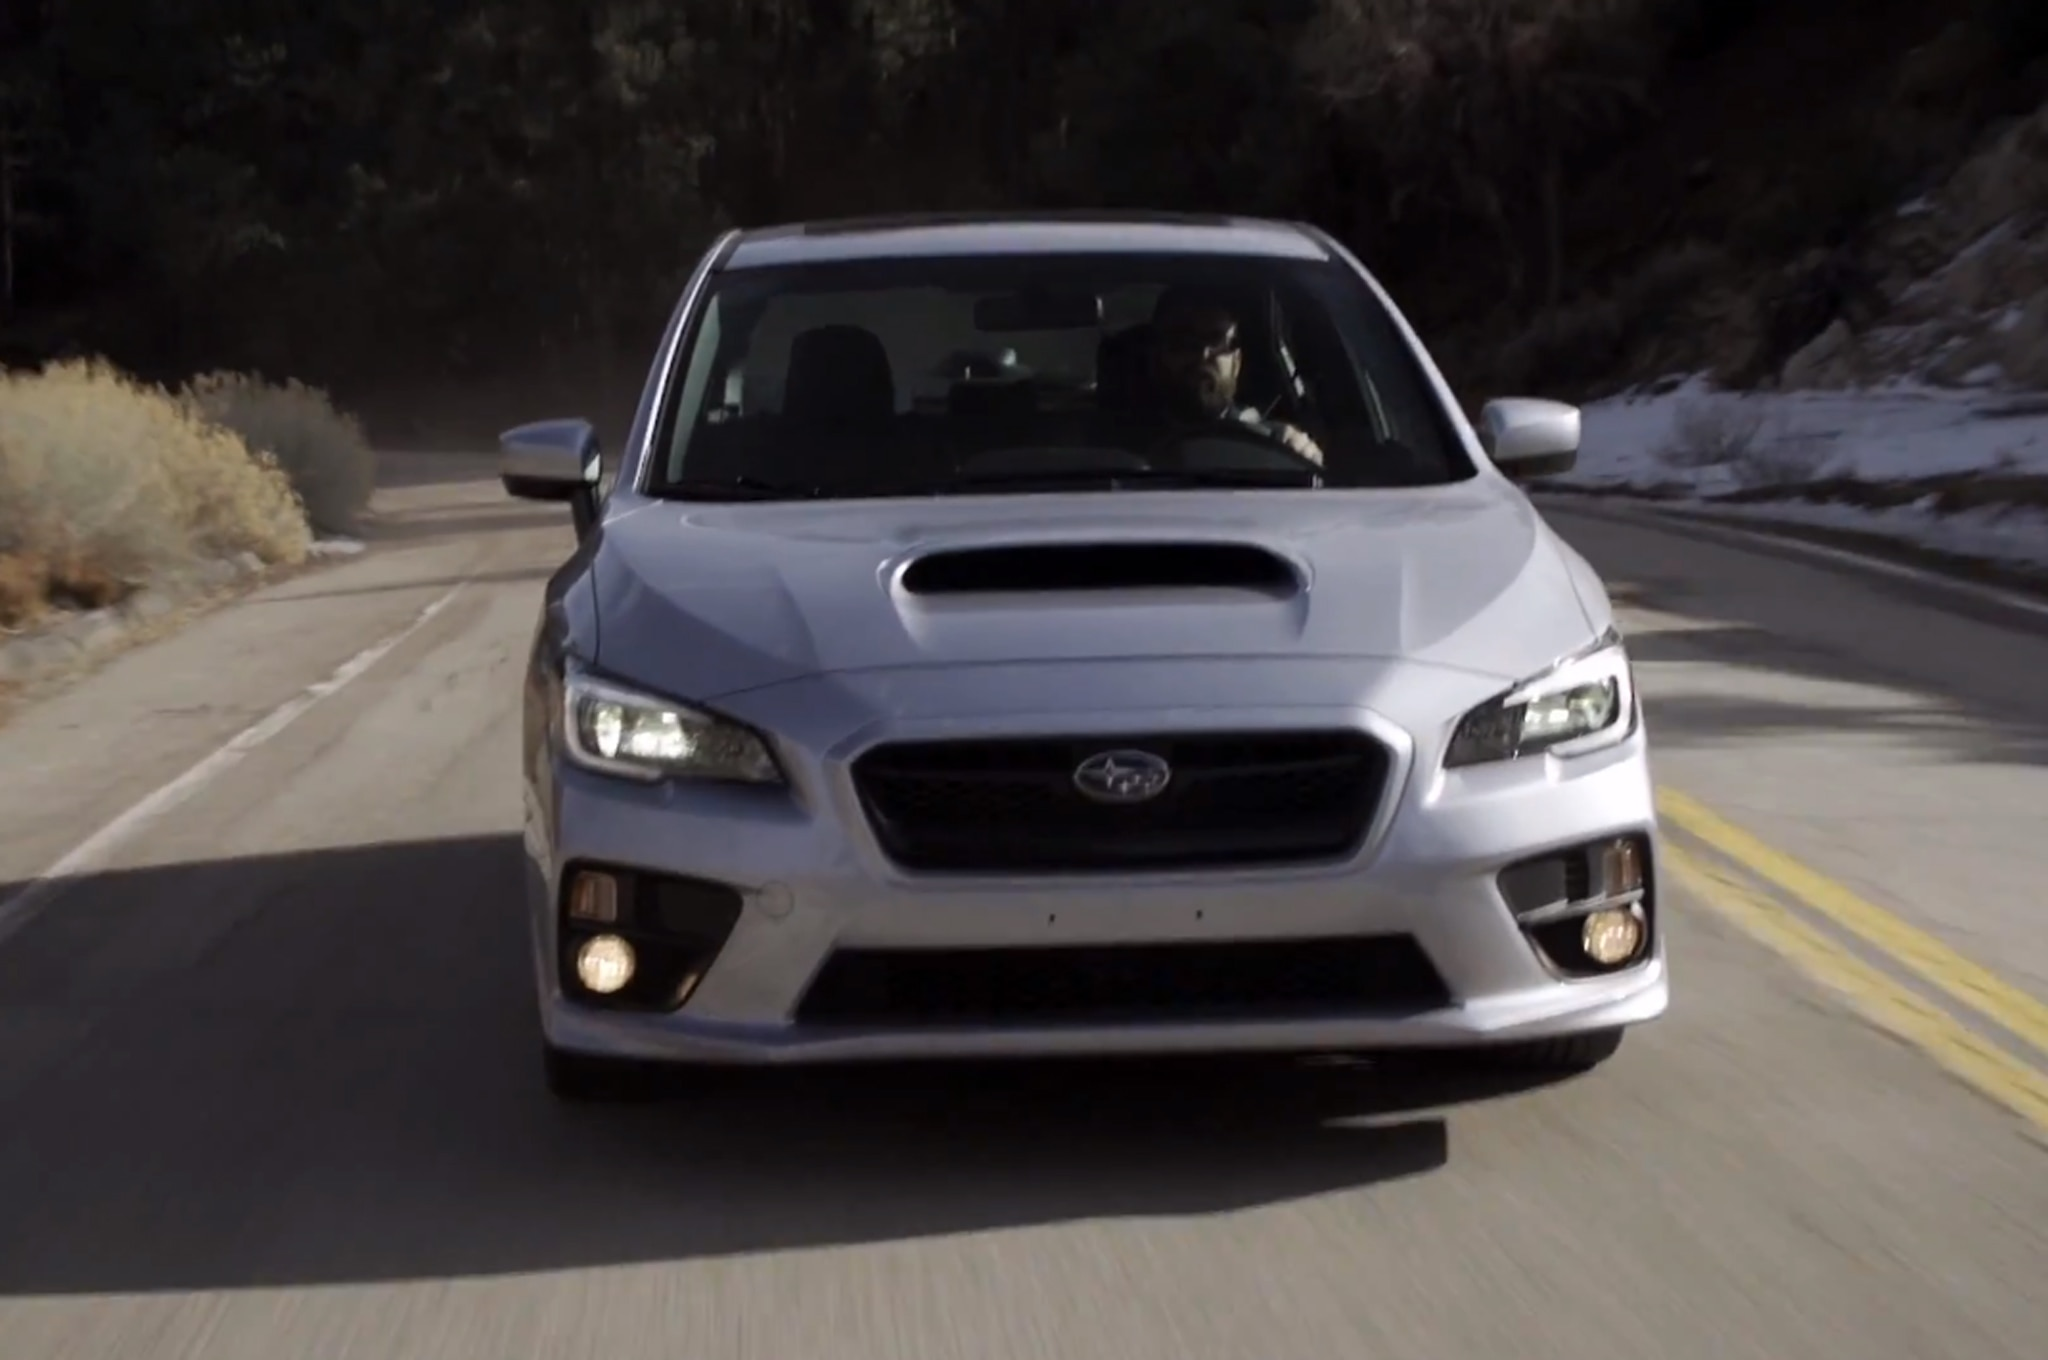 2015 Subaru Wrx Front Video Grab1